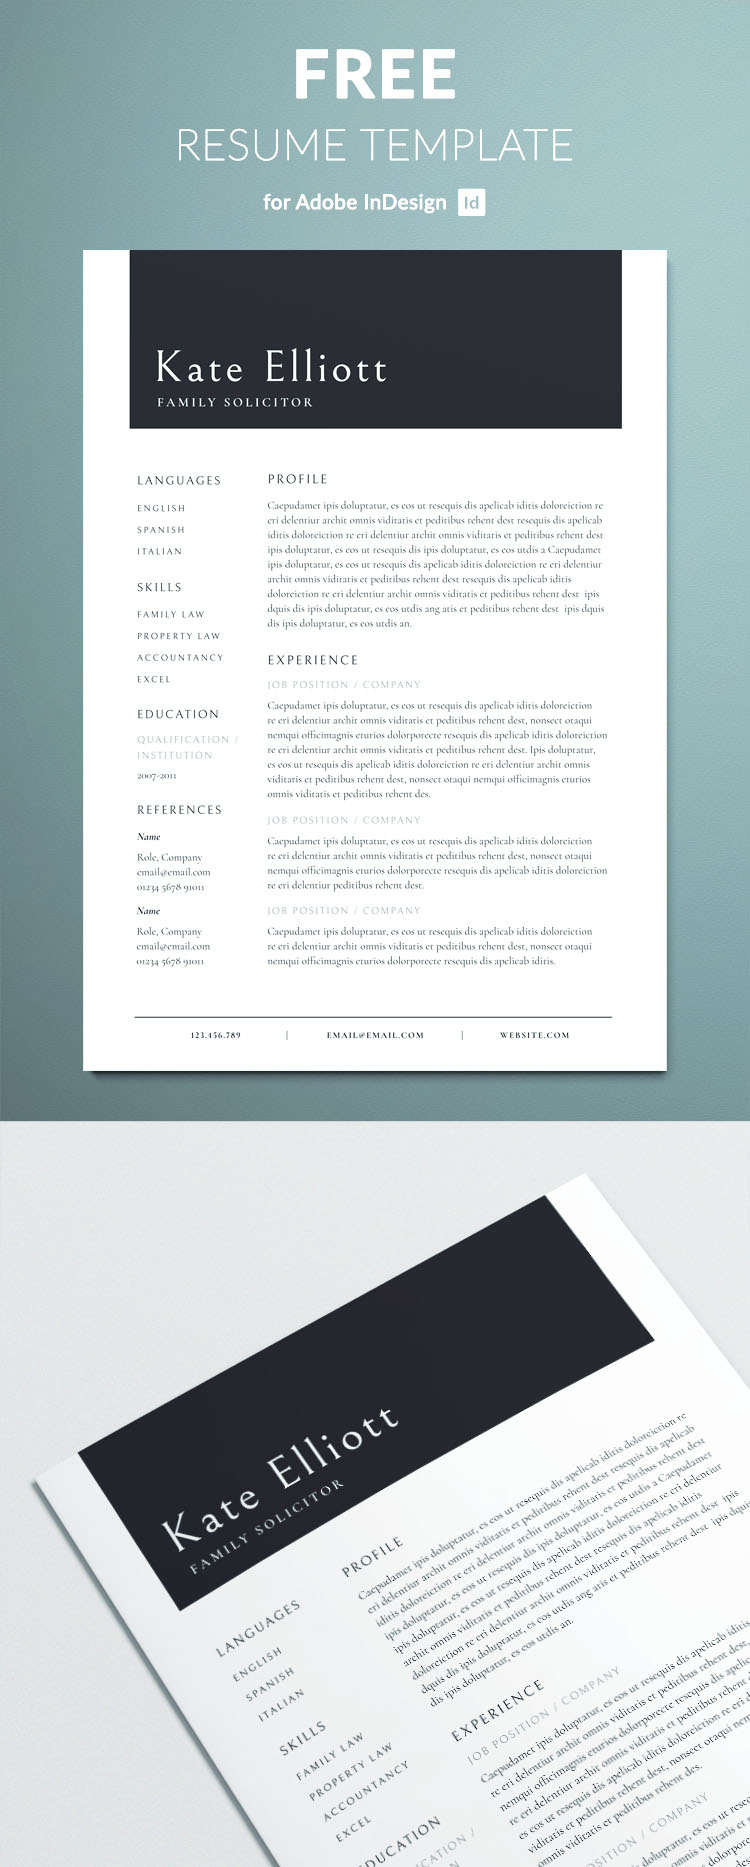 professional resume template for indesign free download professionally created layout